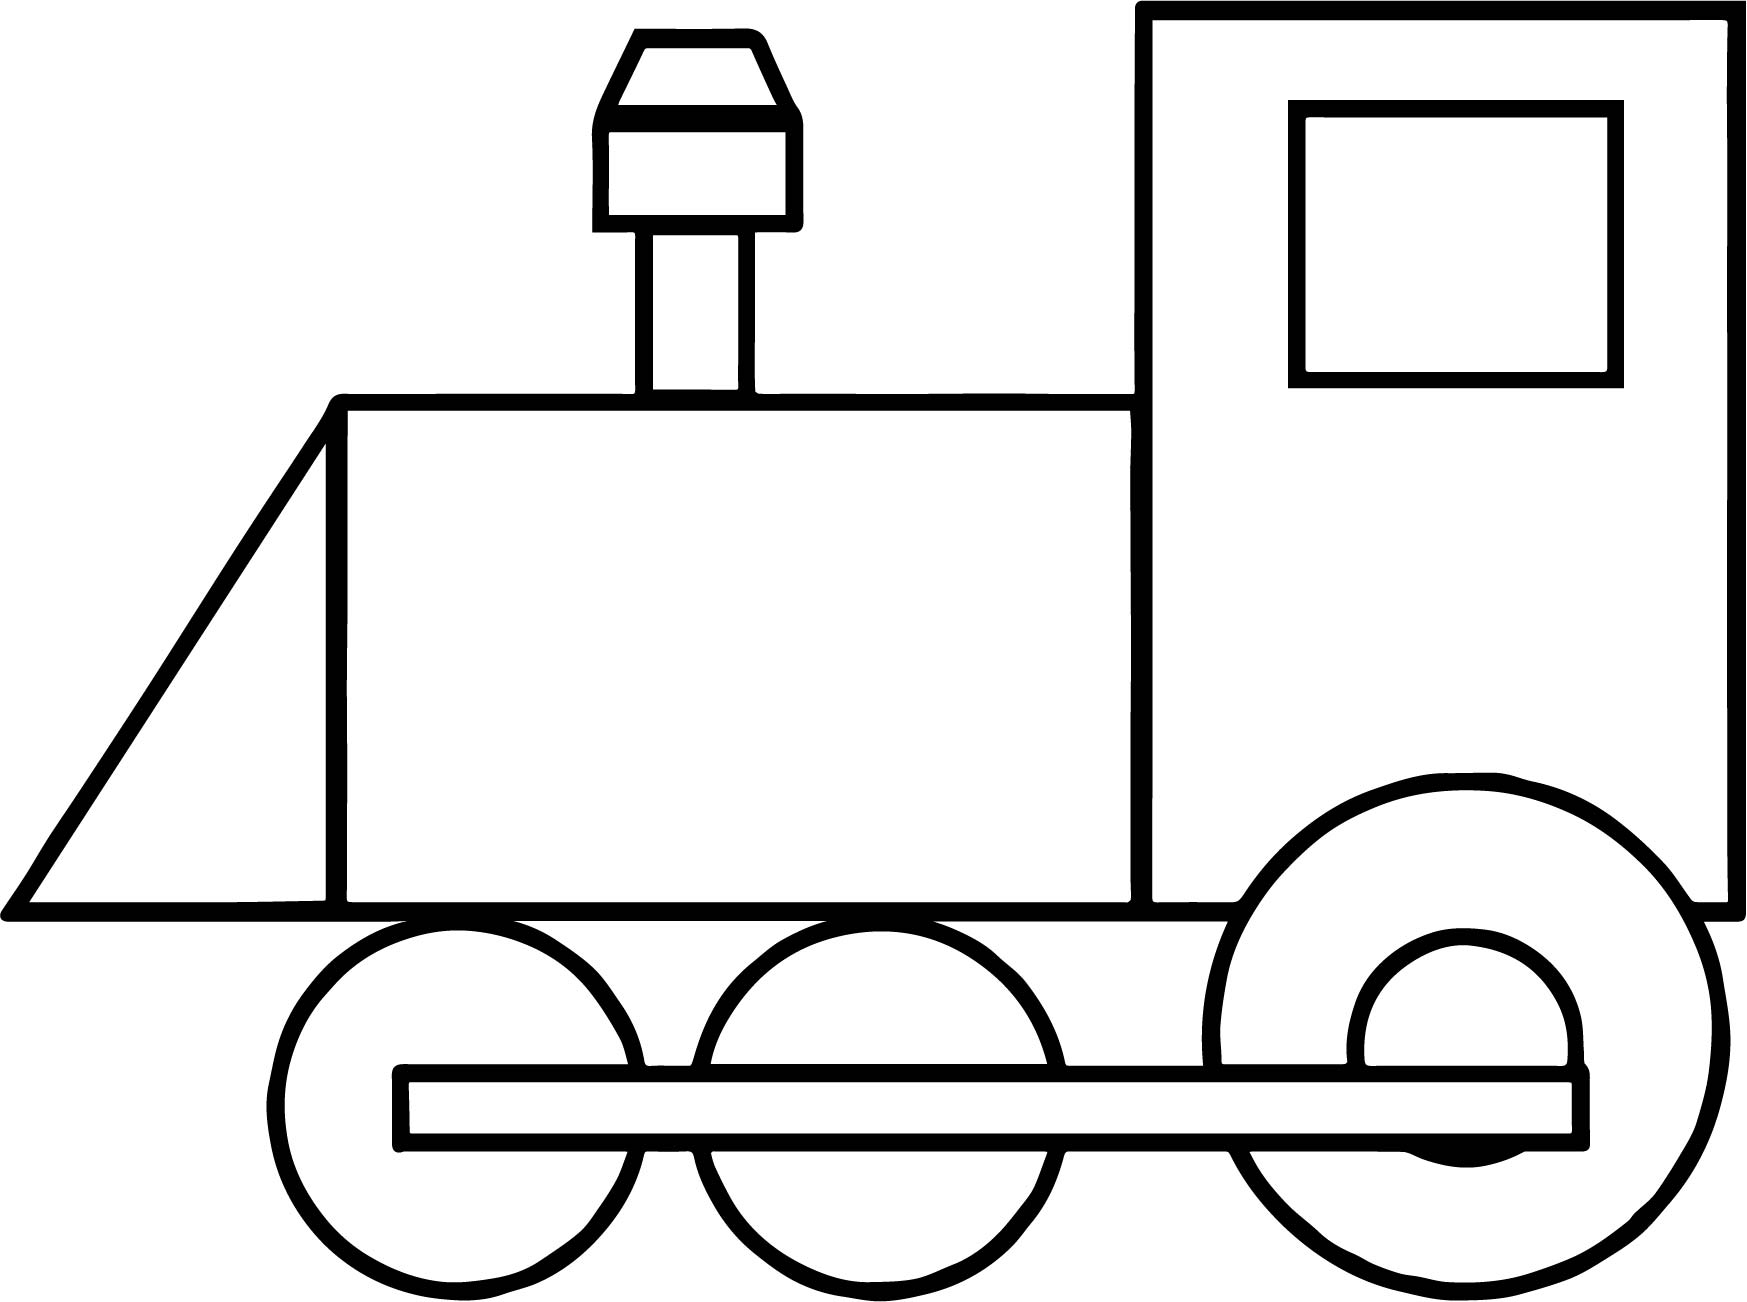 train coloring image train coloring pages free download on clipartmag coloring image train